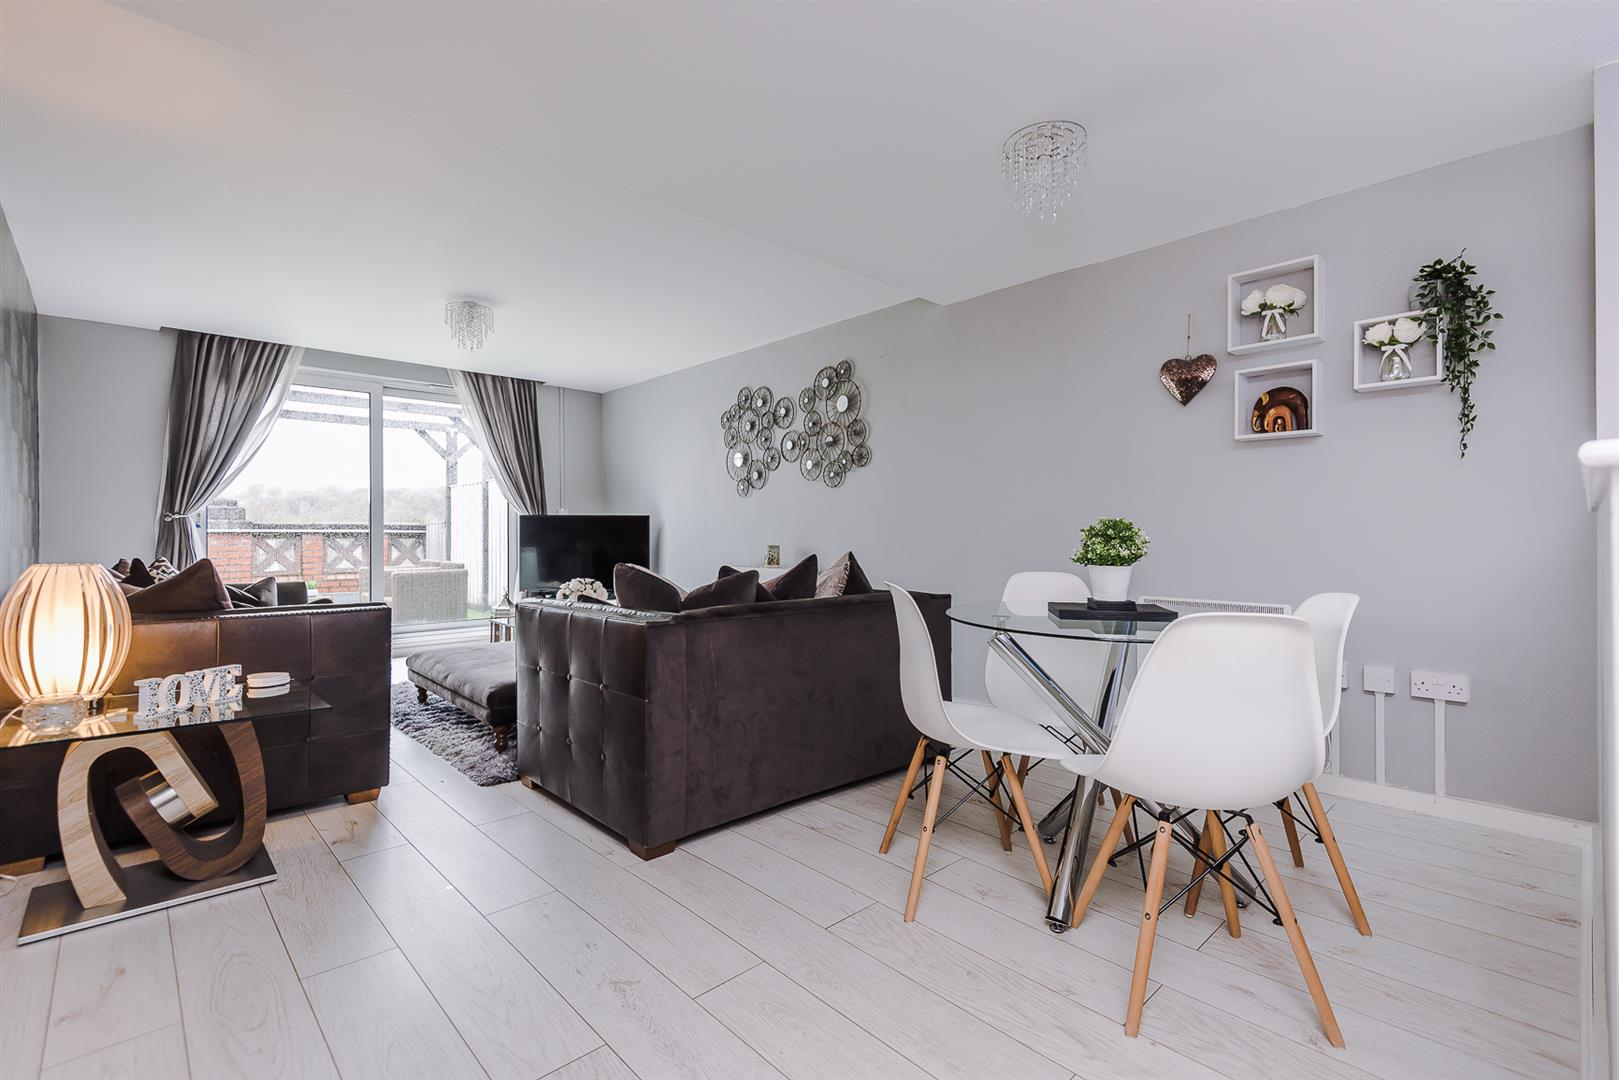 2 Bedroom Apartment For Sale Image 4